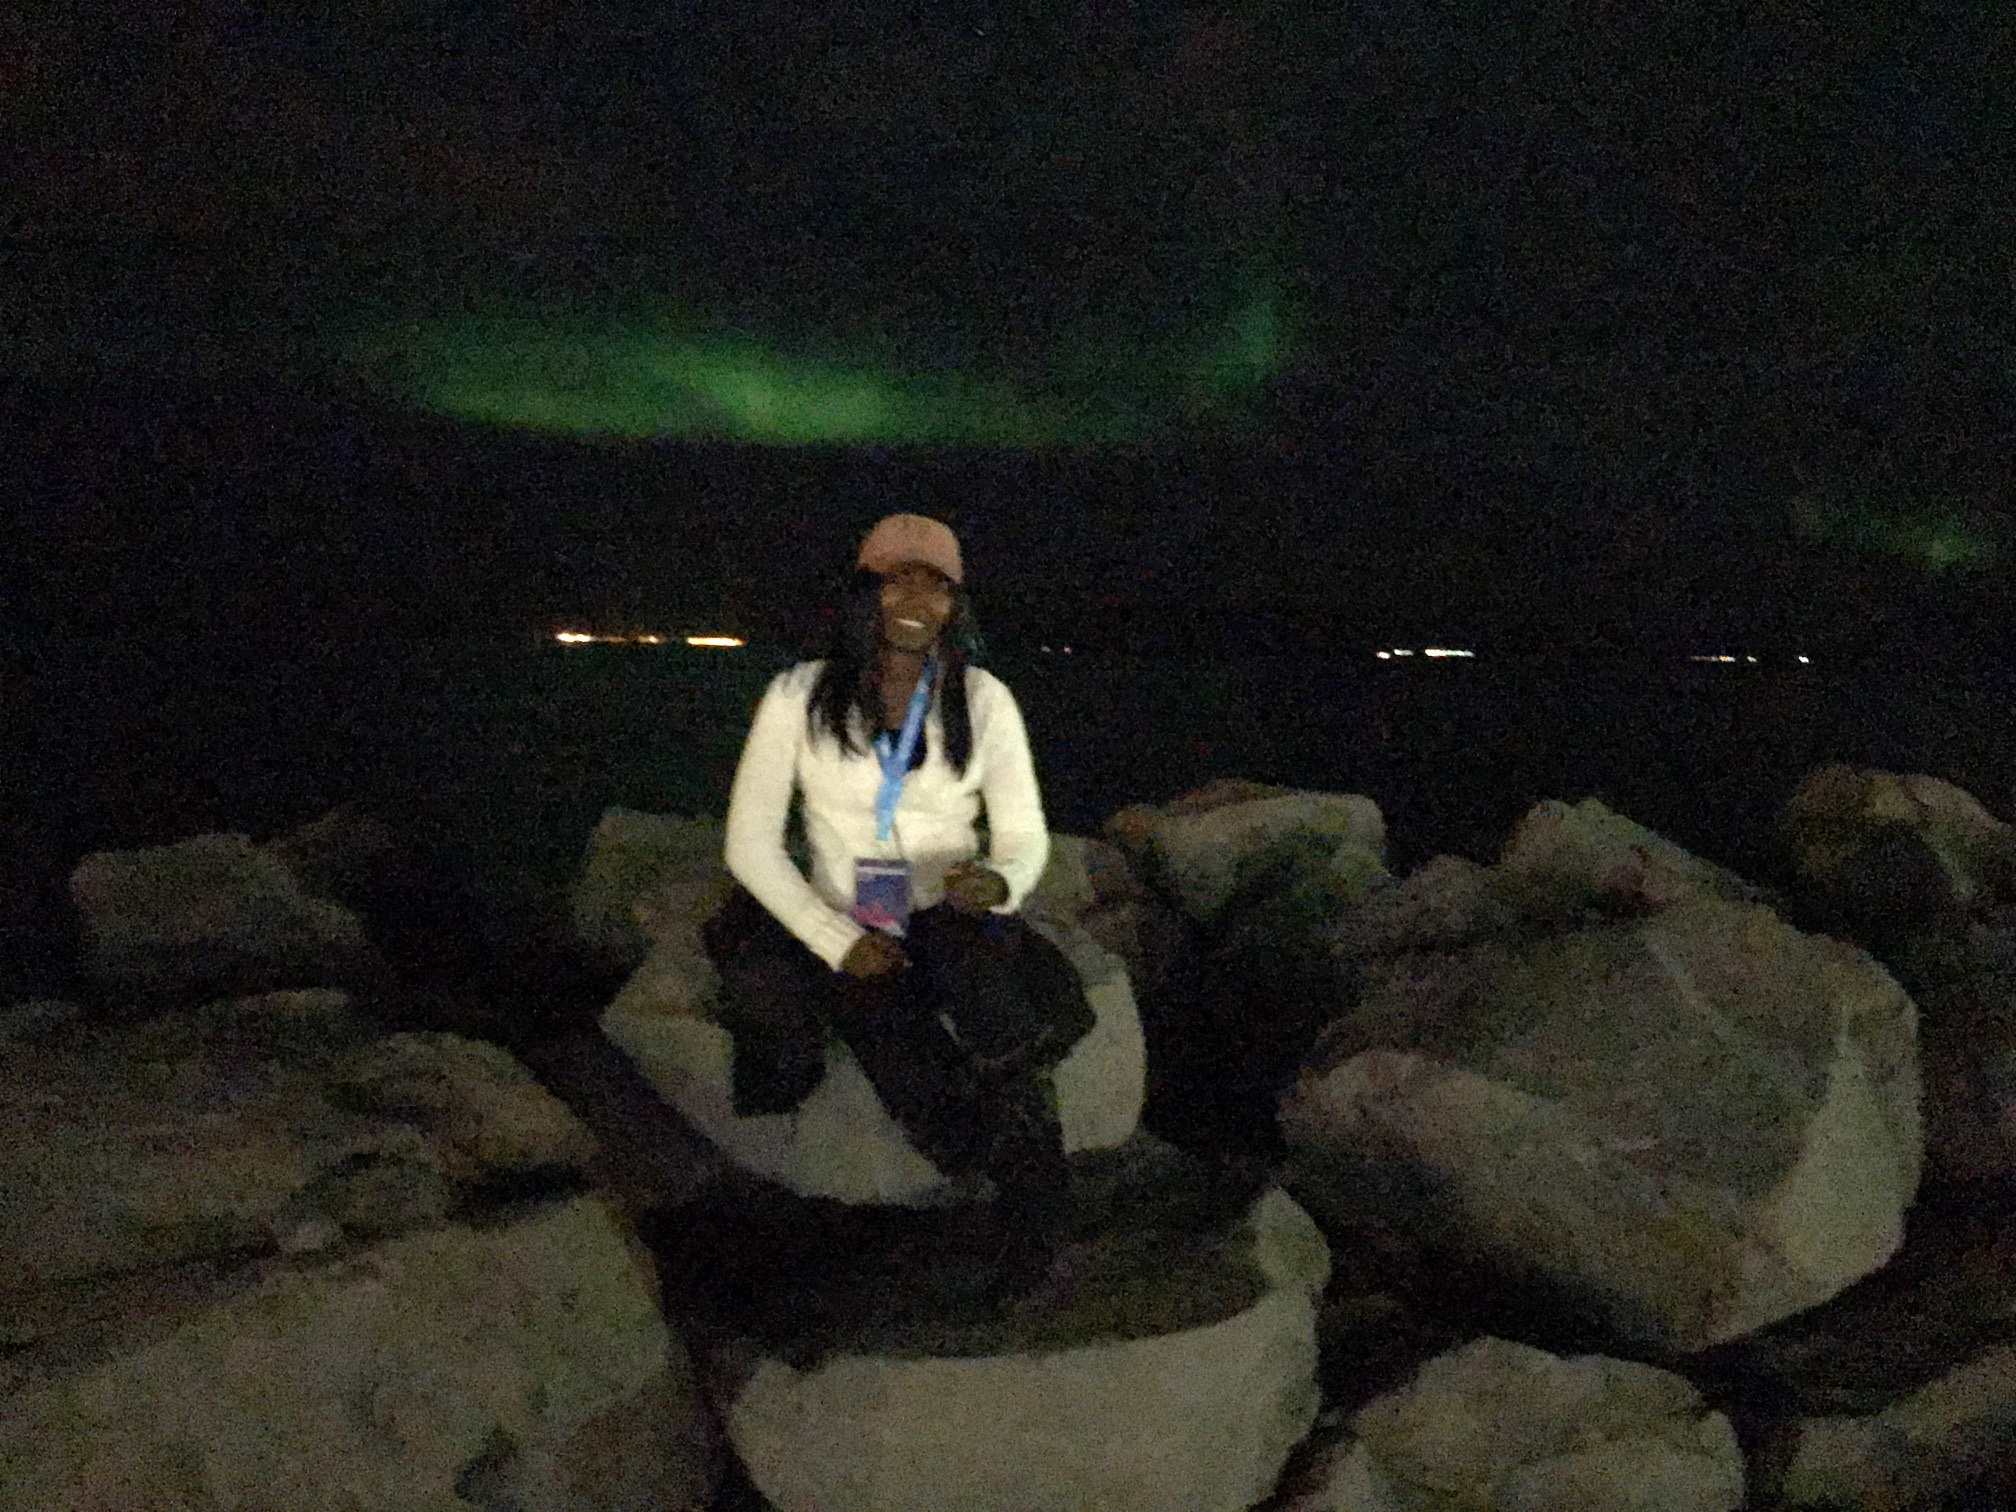 The Northern Lights welcoming us.